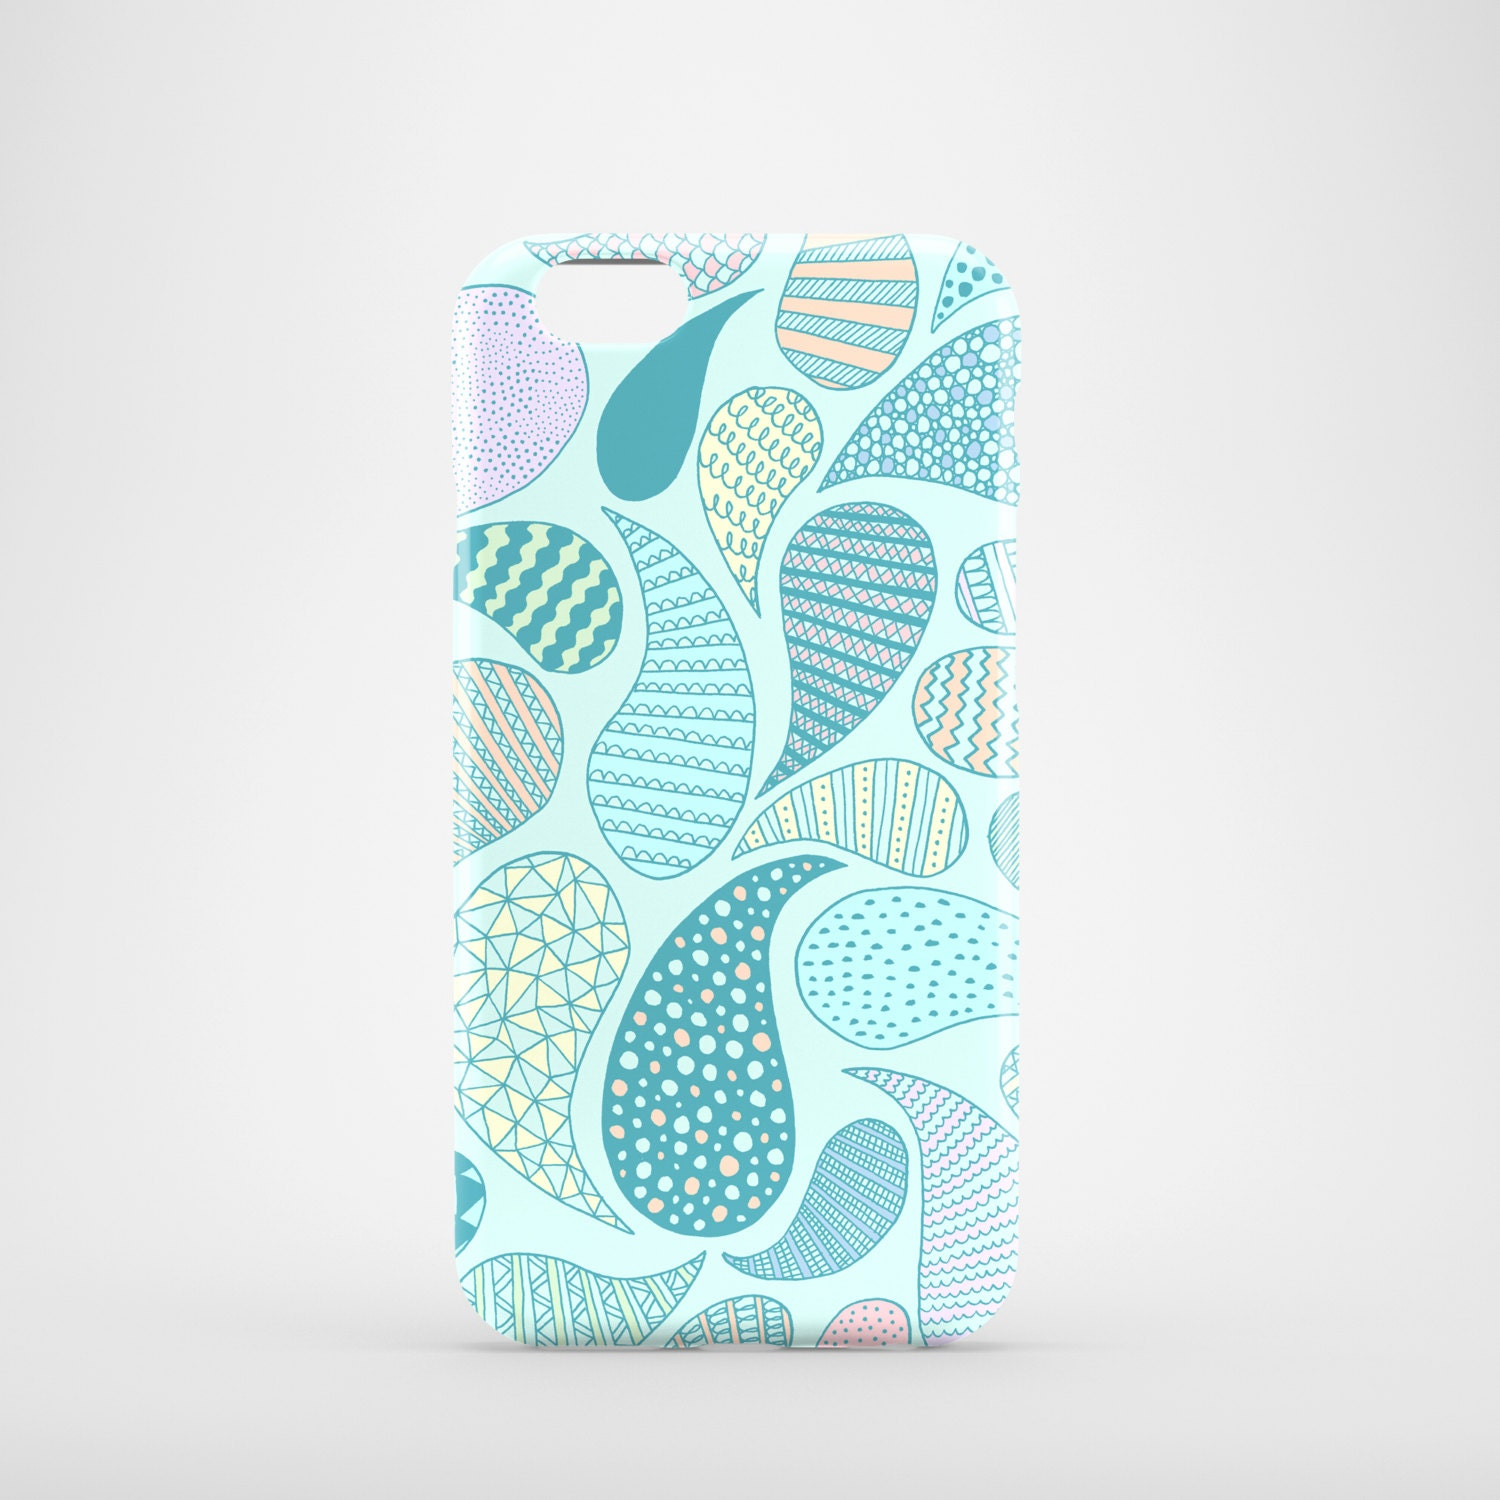 Pastel Paisley mobile phone case iPhone 7 iPhone 7 Plus iPhone SE iPhone 6S iPhone 6 iPhone 5S iPhone 5 illustrated blue phone case